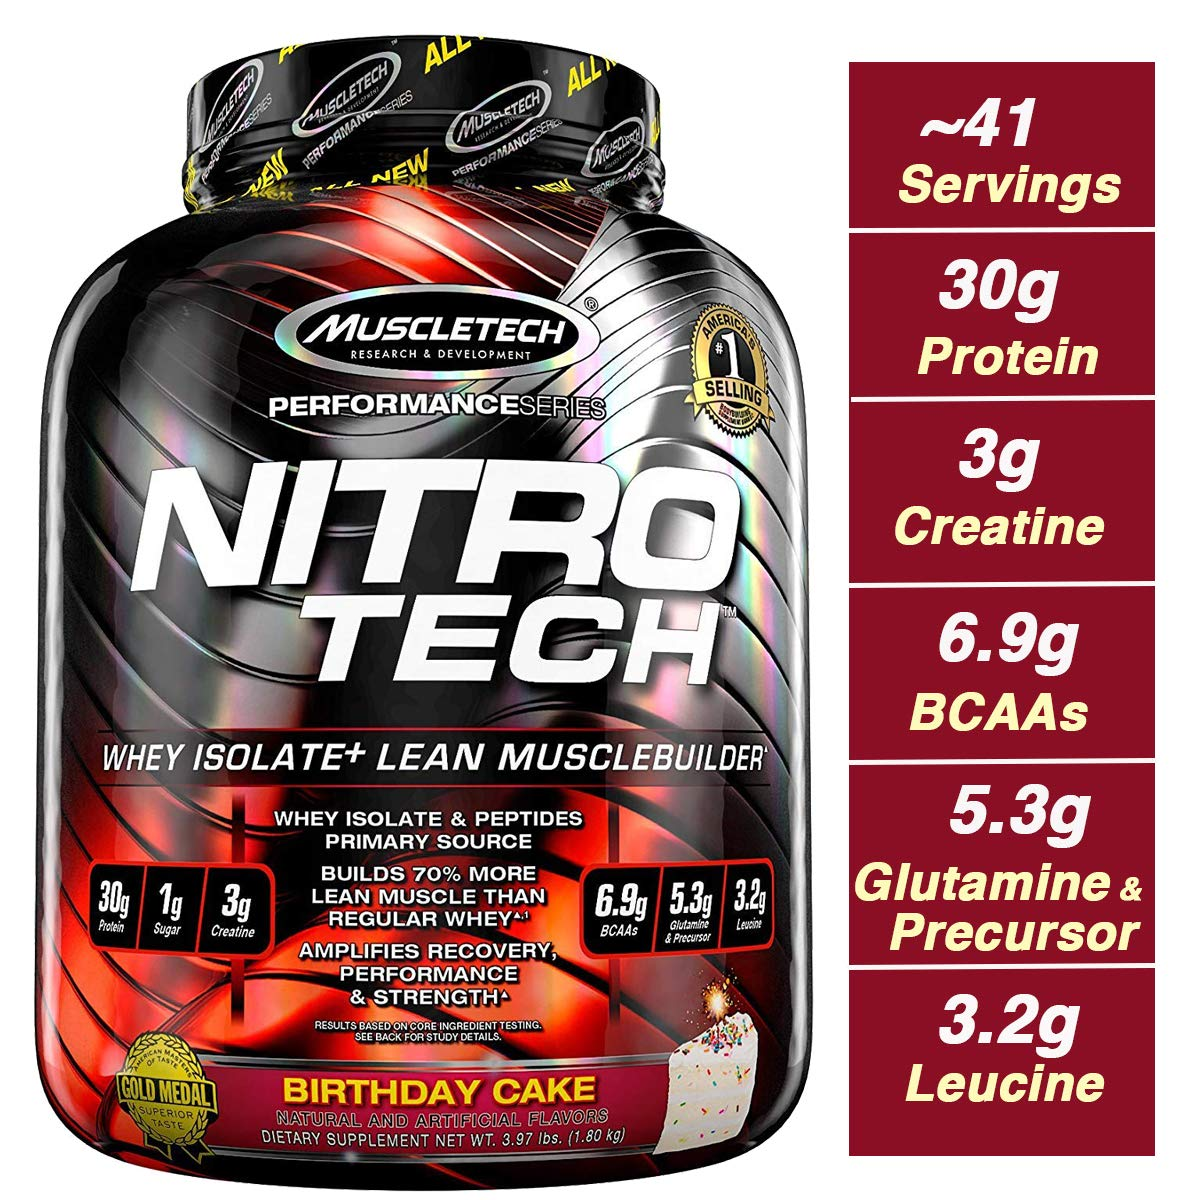 MuscleTech NitroTech Protein Powder Plus Muscle Builder, 100 Whey Protein with Whey Isolate, Vanilla Birthday Cake, 40 Servings 3.97lb